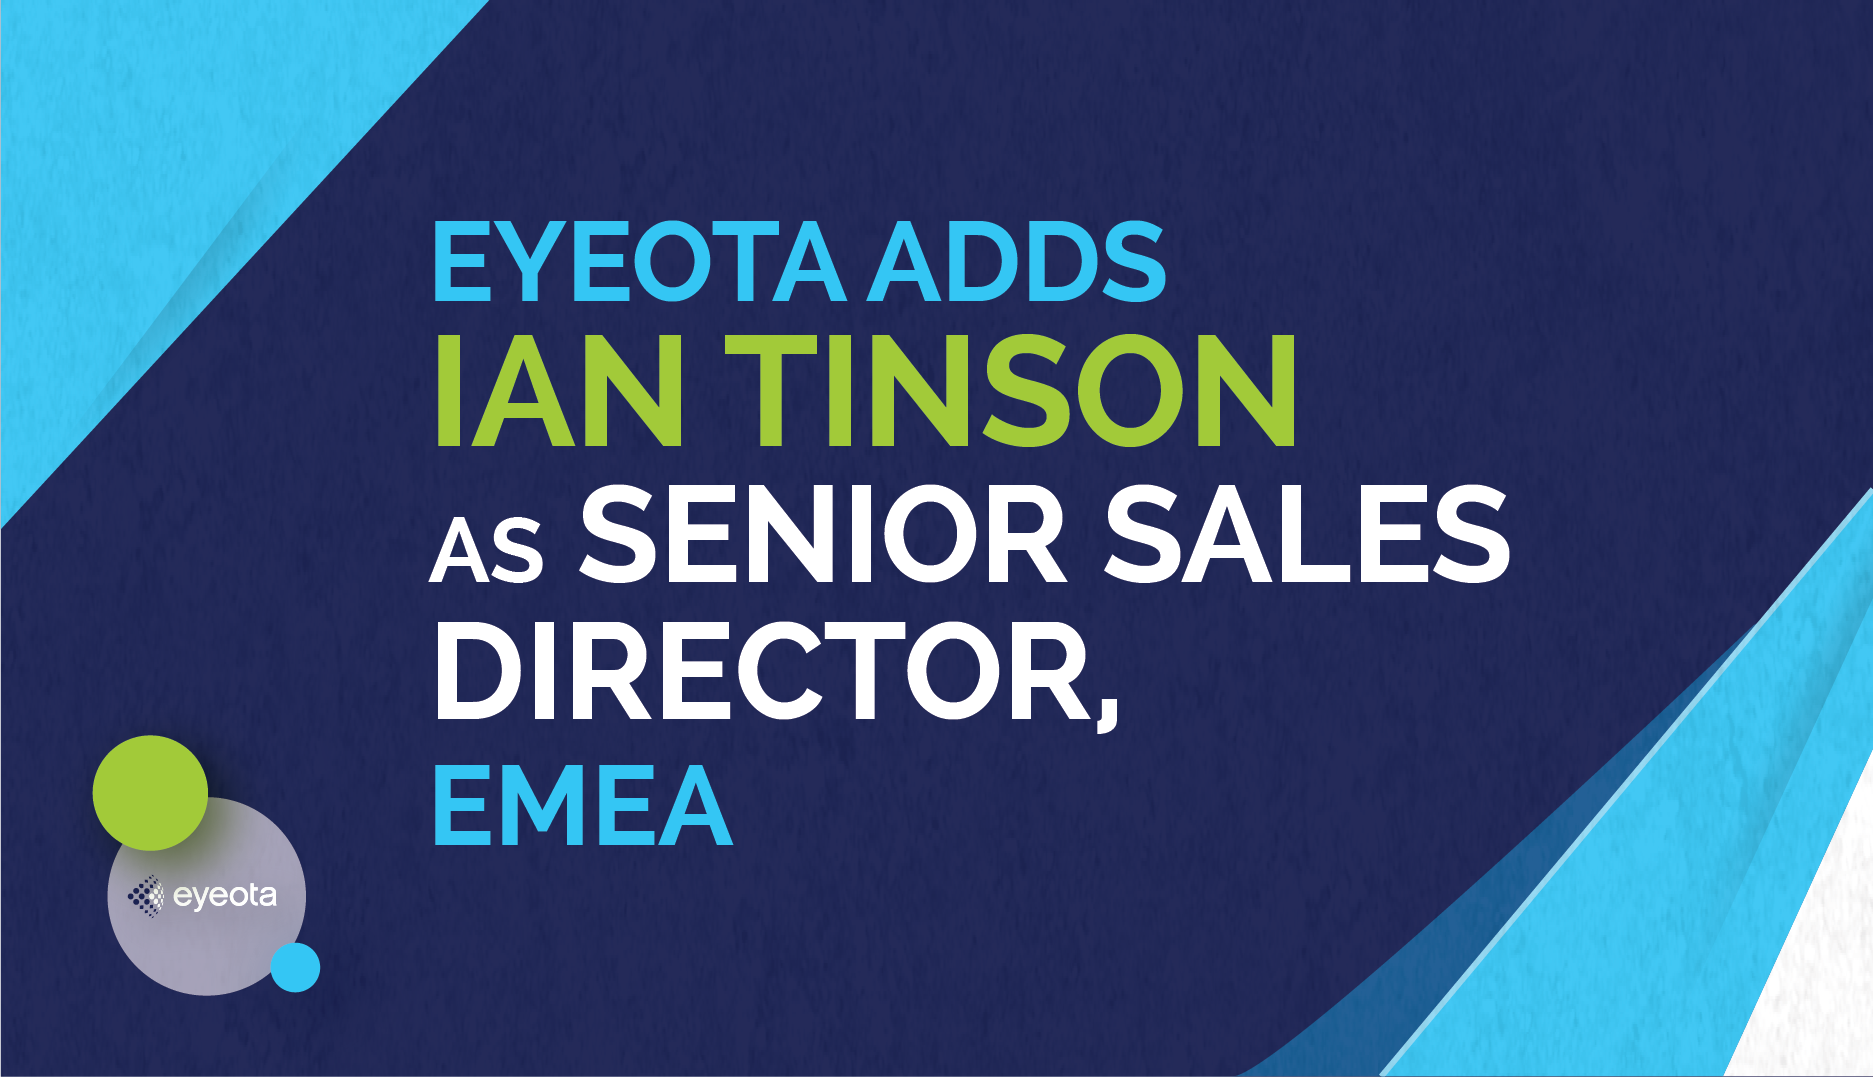 Ian Tinson Joins Eyeota as Senior Sales Director, EMEA